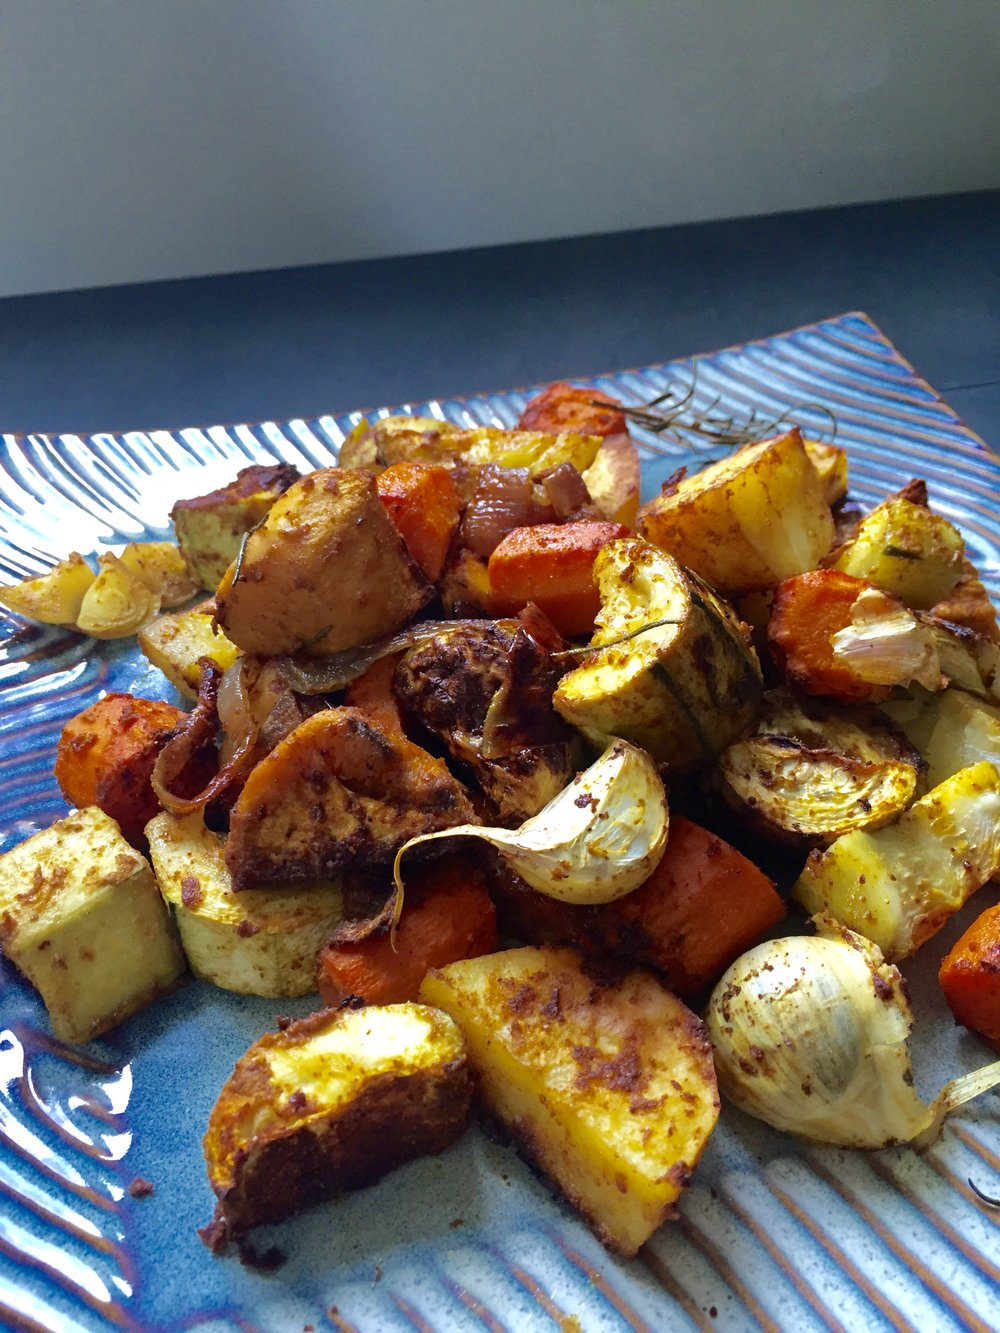 Roasted vegetables with Ayala's Magic Spice